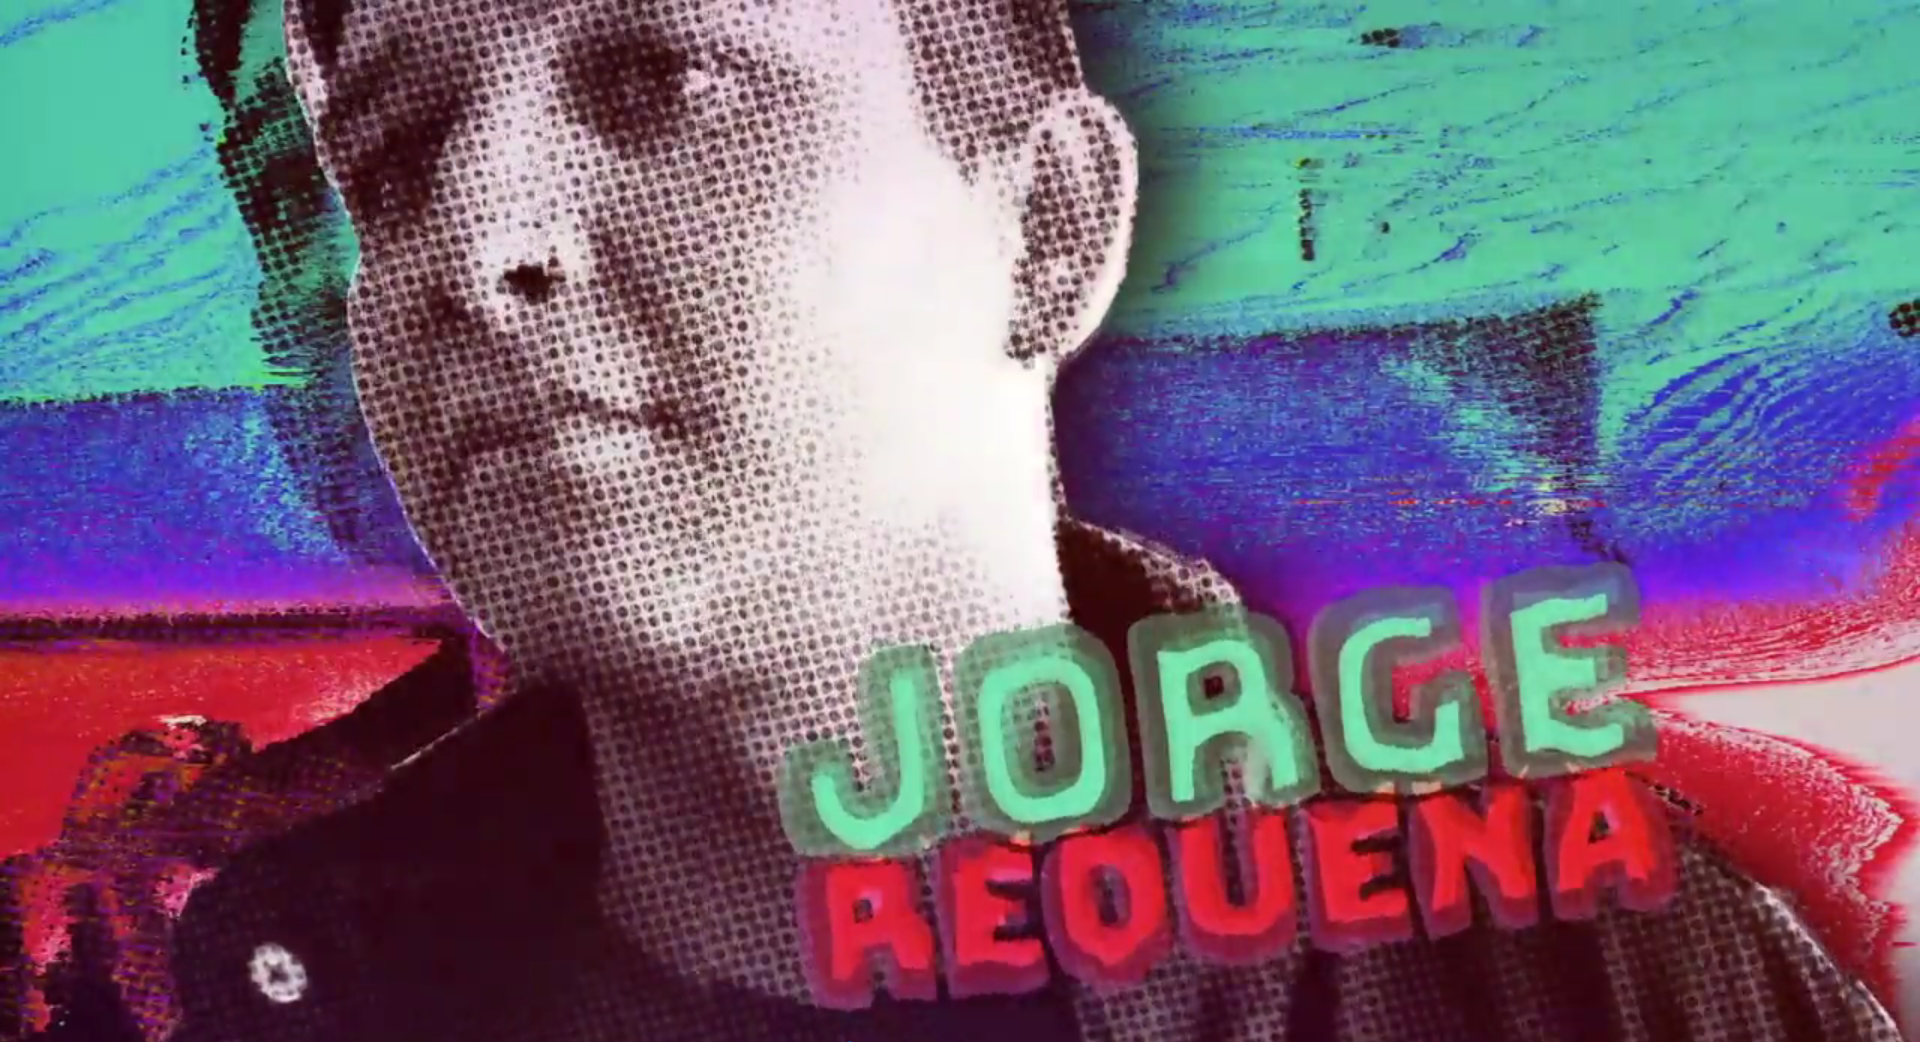 Jorge Requena